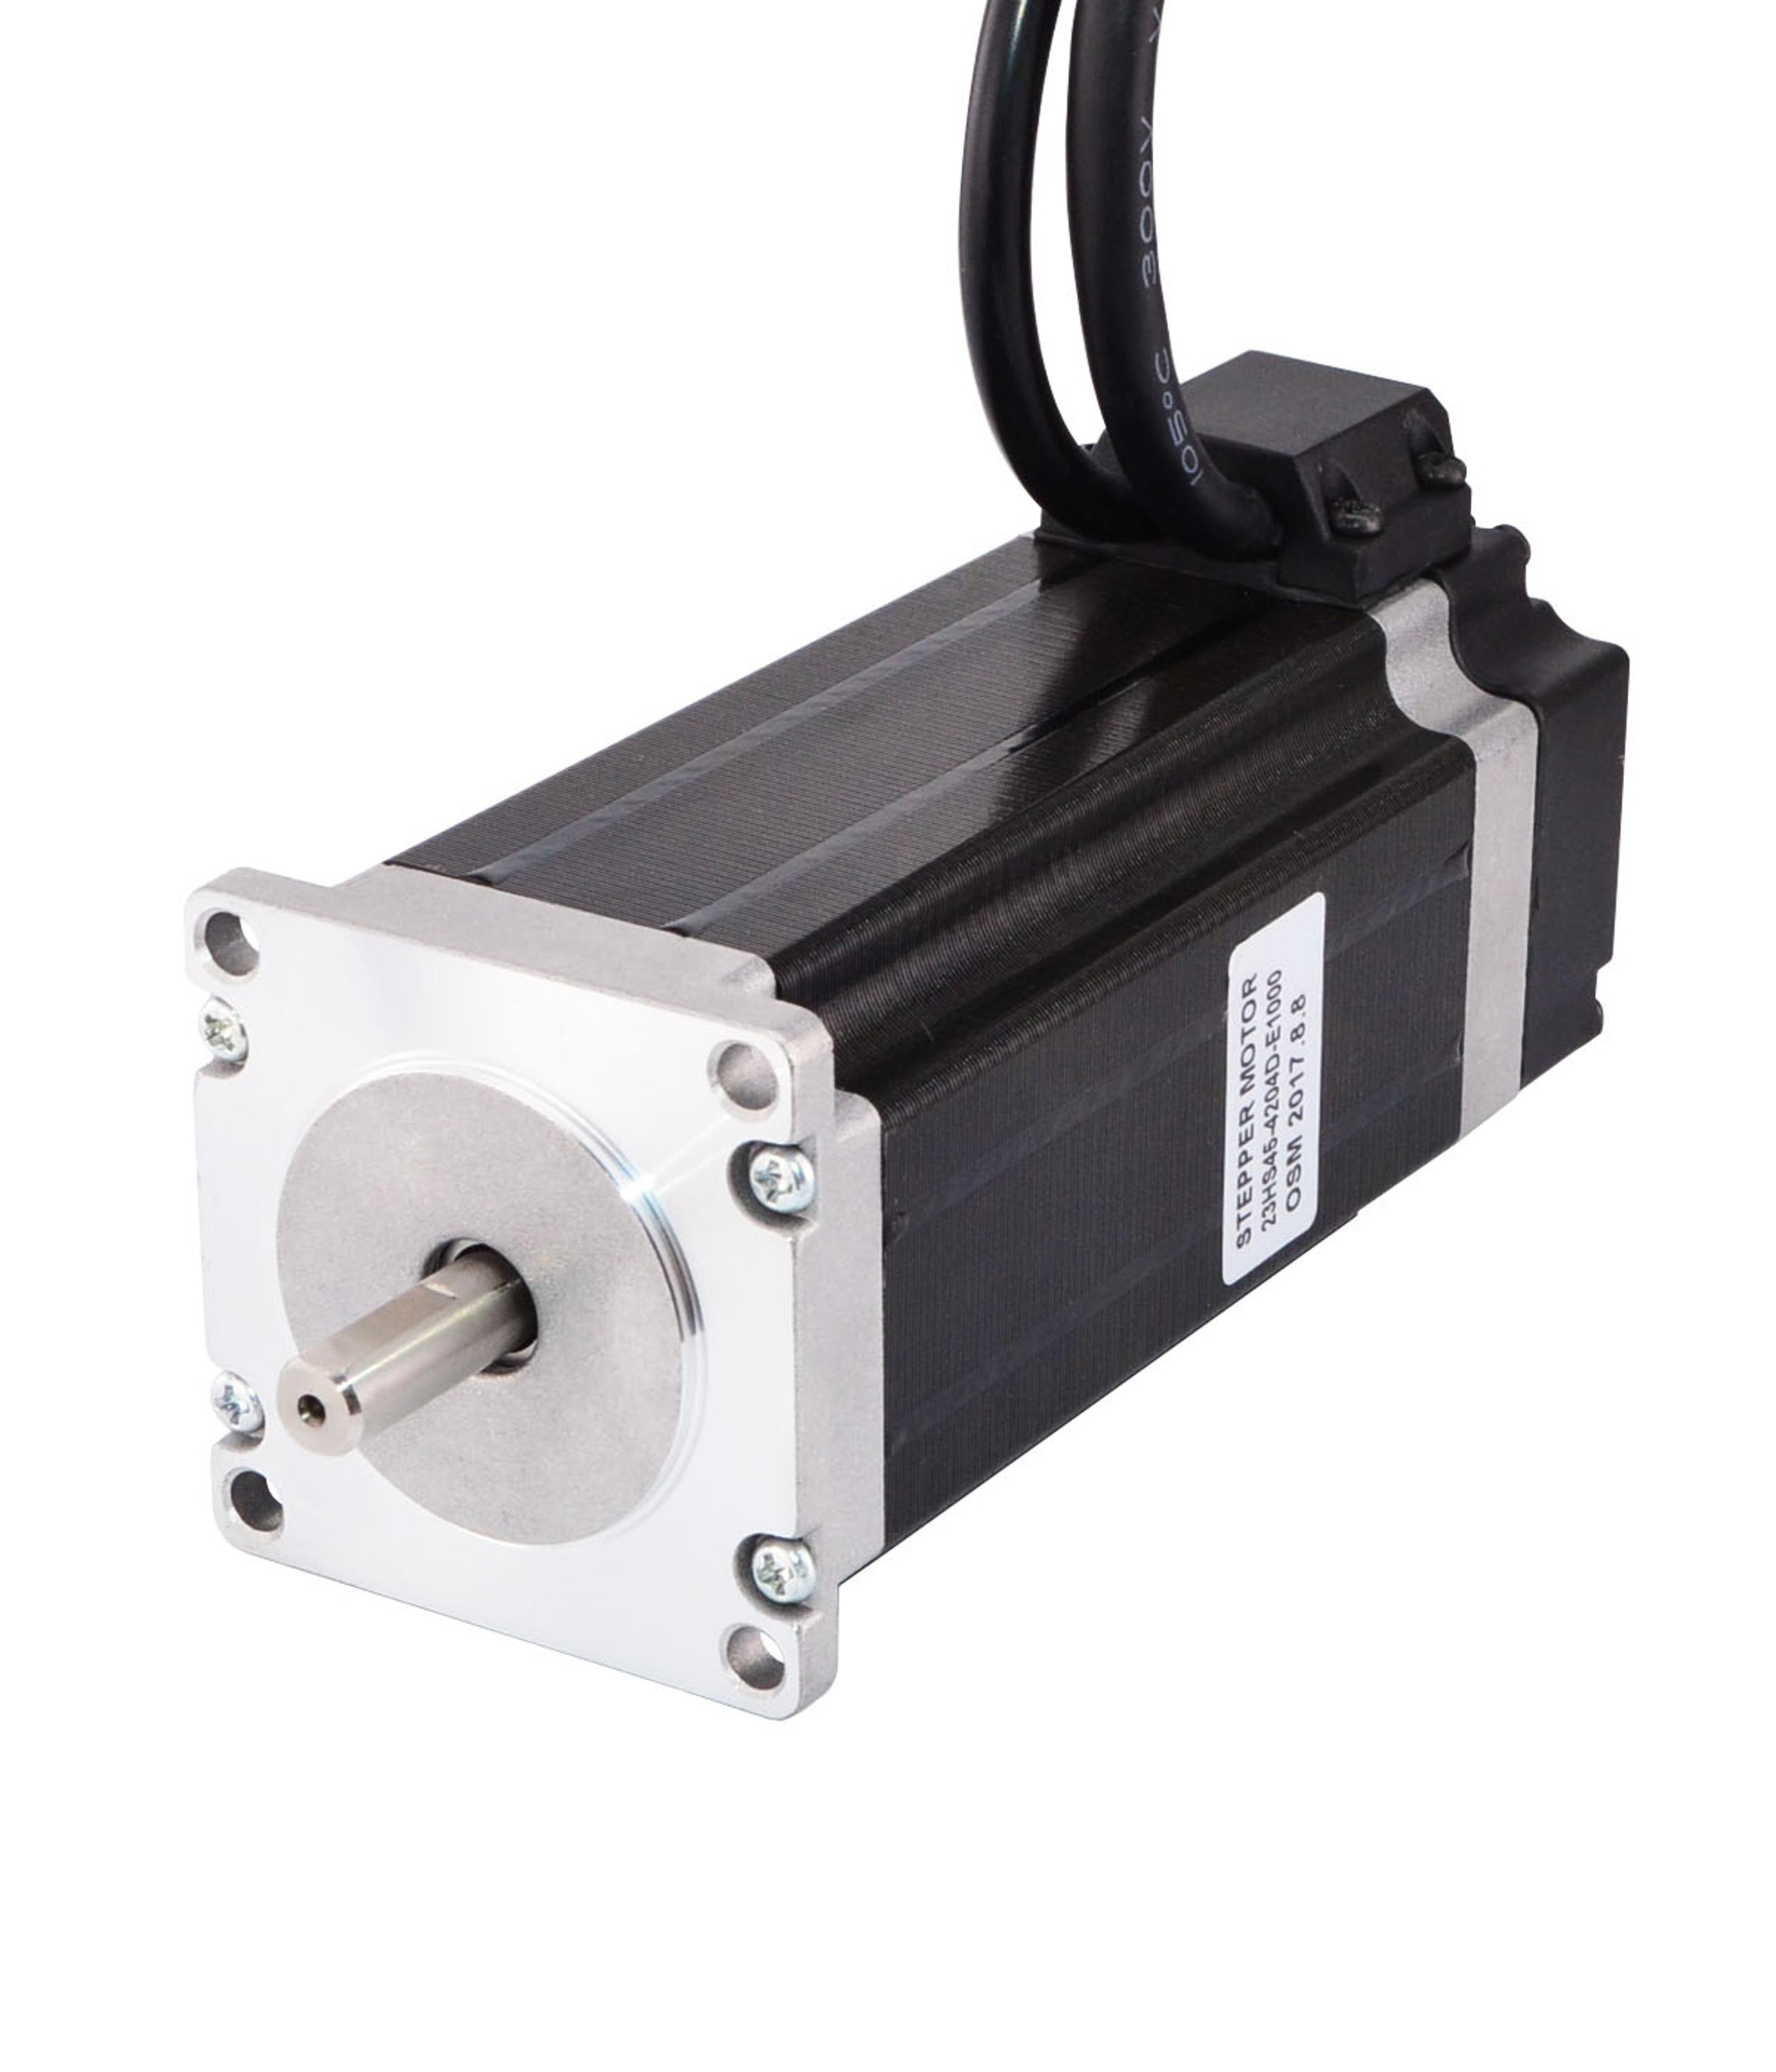 Nema 23 Closed Loop Stepper Motor 3.0Nm/425oz.in Encoder 1000CPR top sale act motor closed loop stepper motor driver hbs57 24 50vdc for nema23 stepper motor with encoder top quality